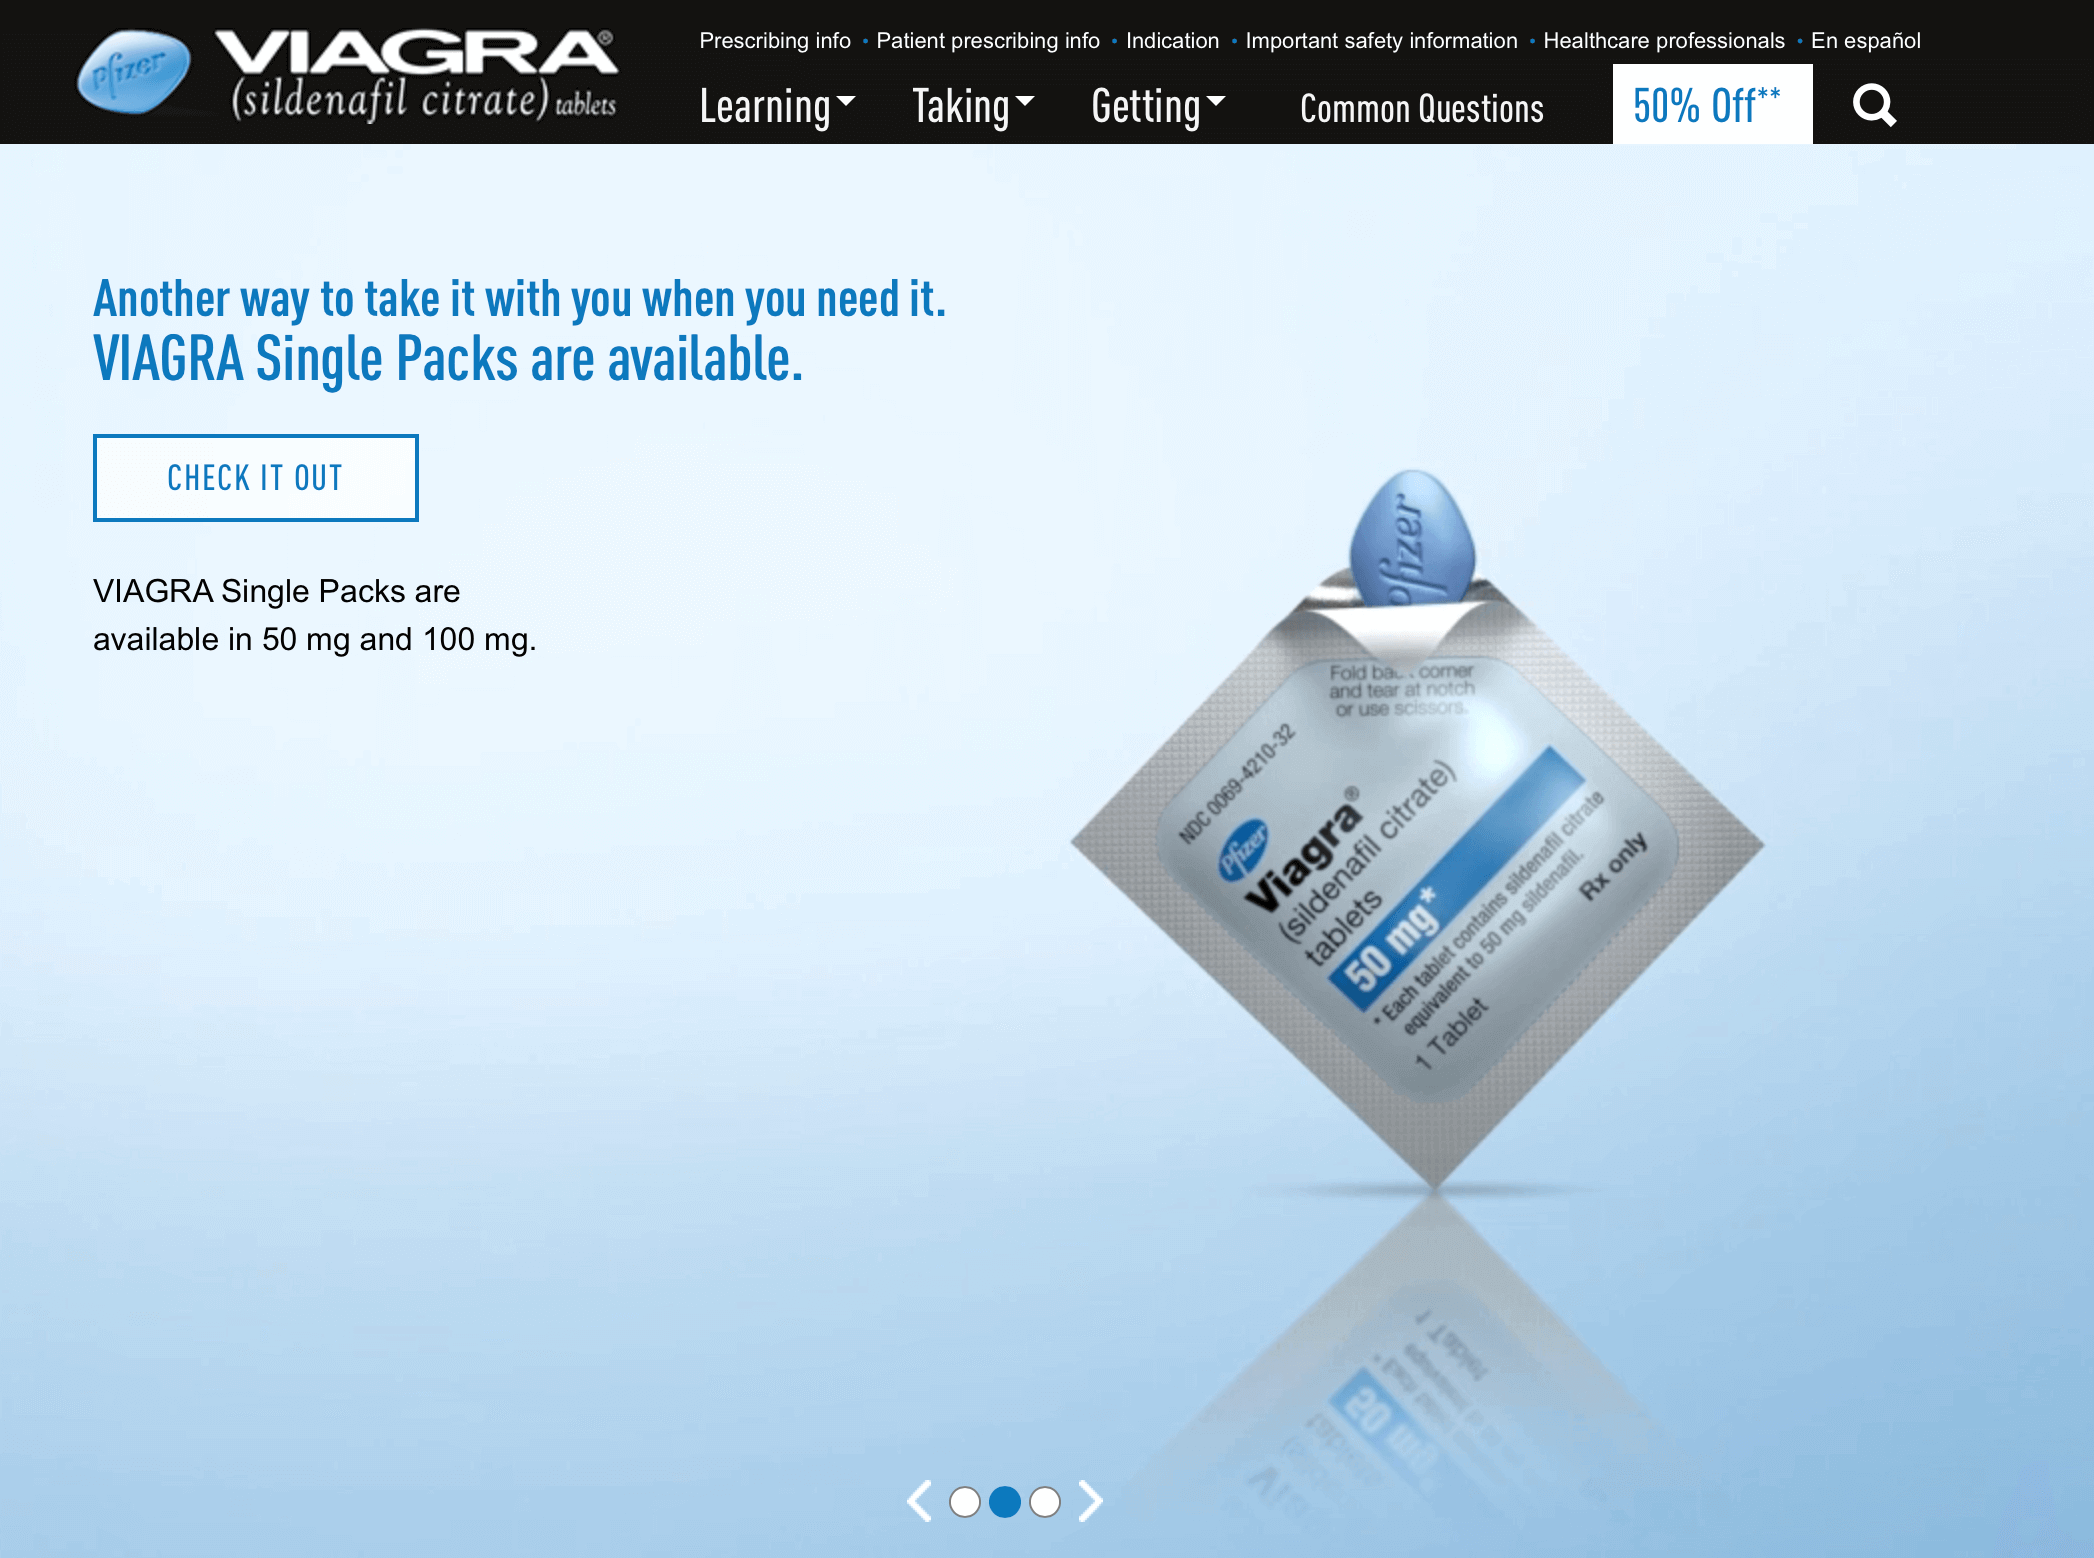 Viagra.com Pharmacy Review | BestPharmacyReviews